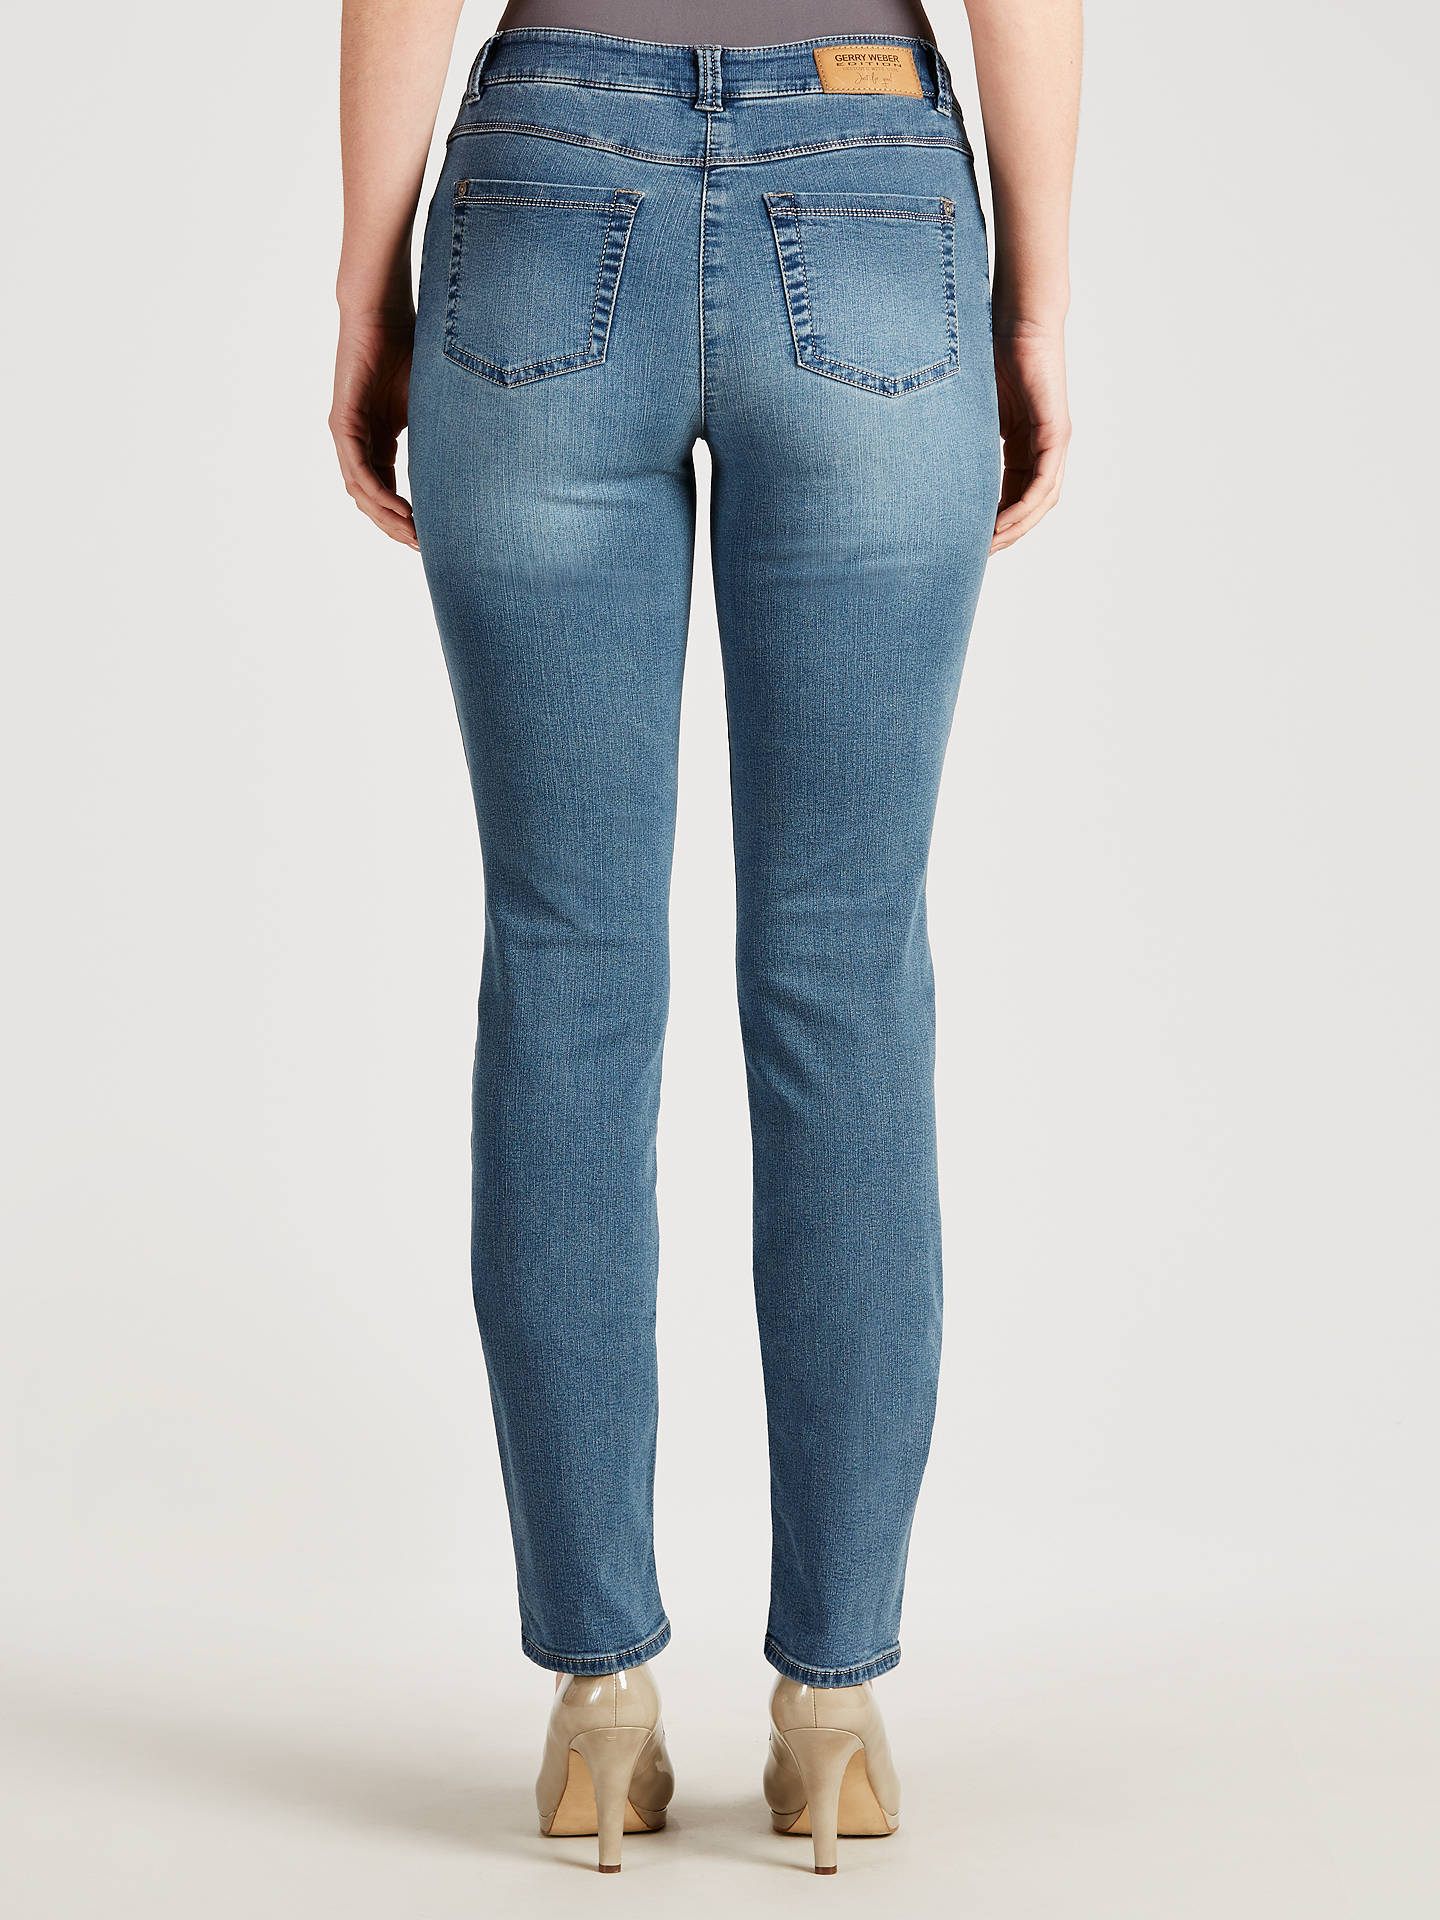 buy popular bfdda 75fc6 Gerry Weber Roxy Perfect Fit Jeans, Blue Wash at John Lewis ...